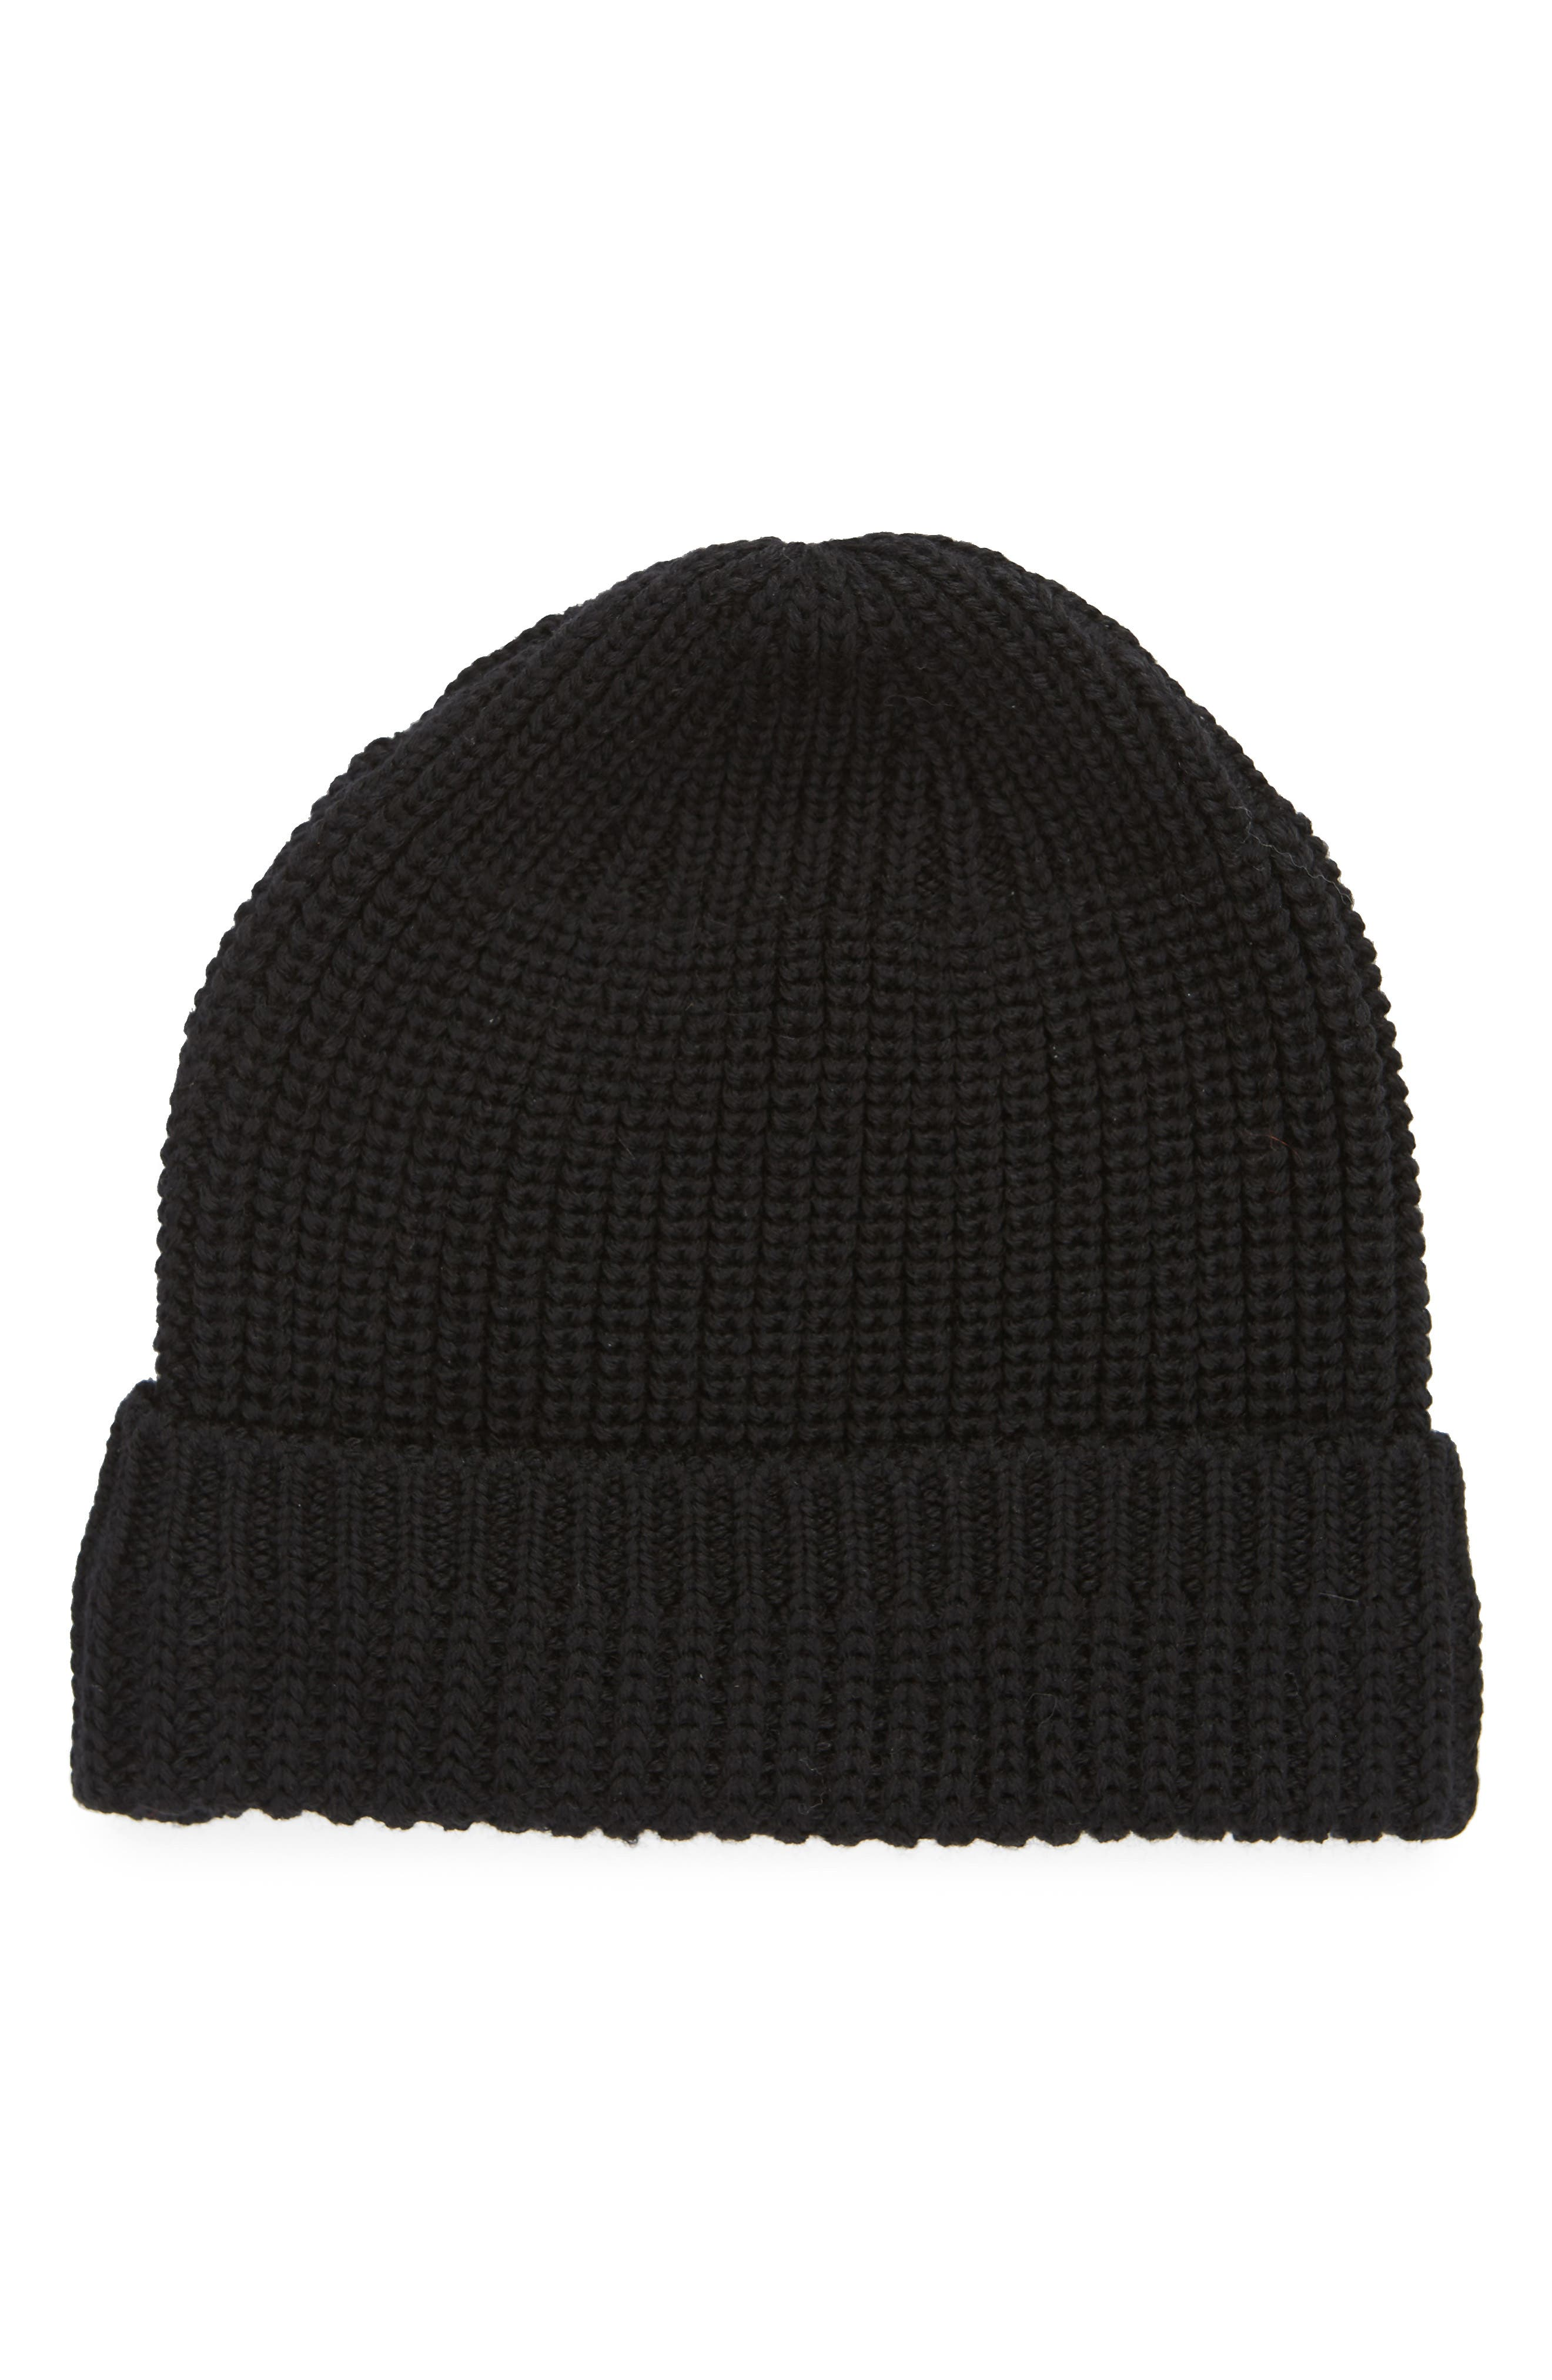 WINGS + HORNS, Knit Wool Beanie, Main thumbnail 1, color, 001